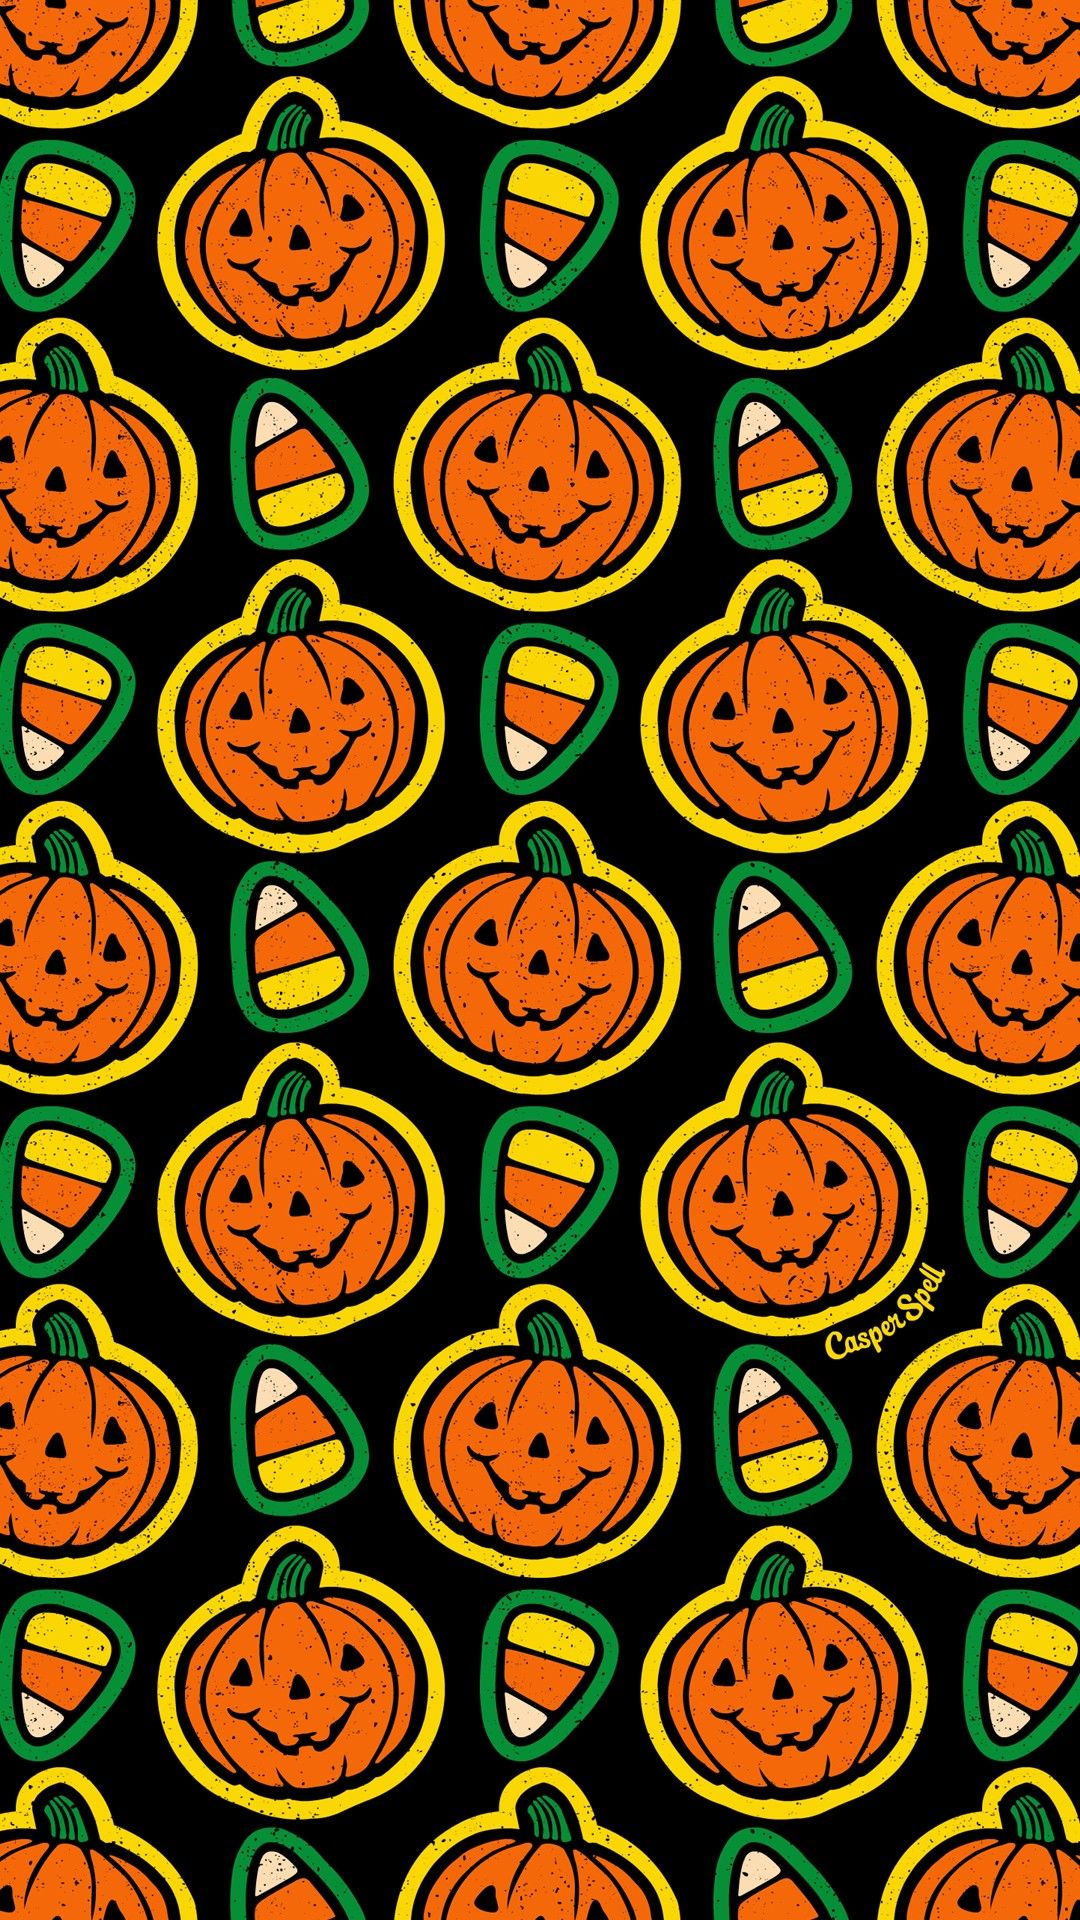 Classic Halloween Pattern By Casper Spell Halloween Wallpaper Halloween Backgrounds Halloween Wallpaper Iphone